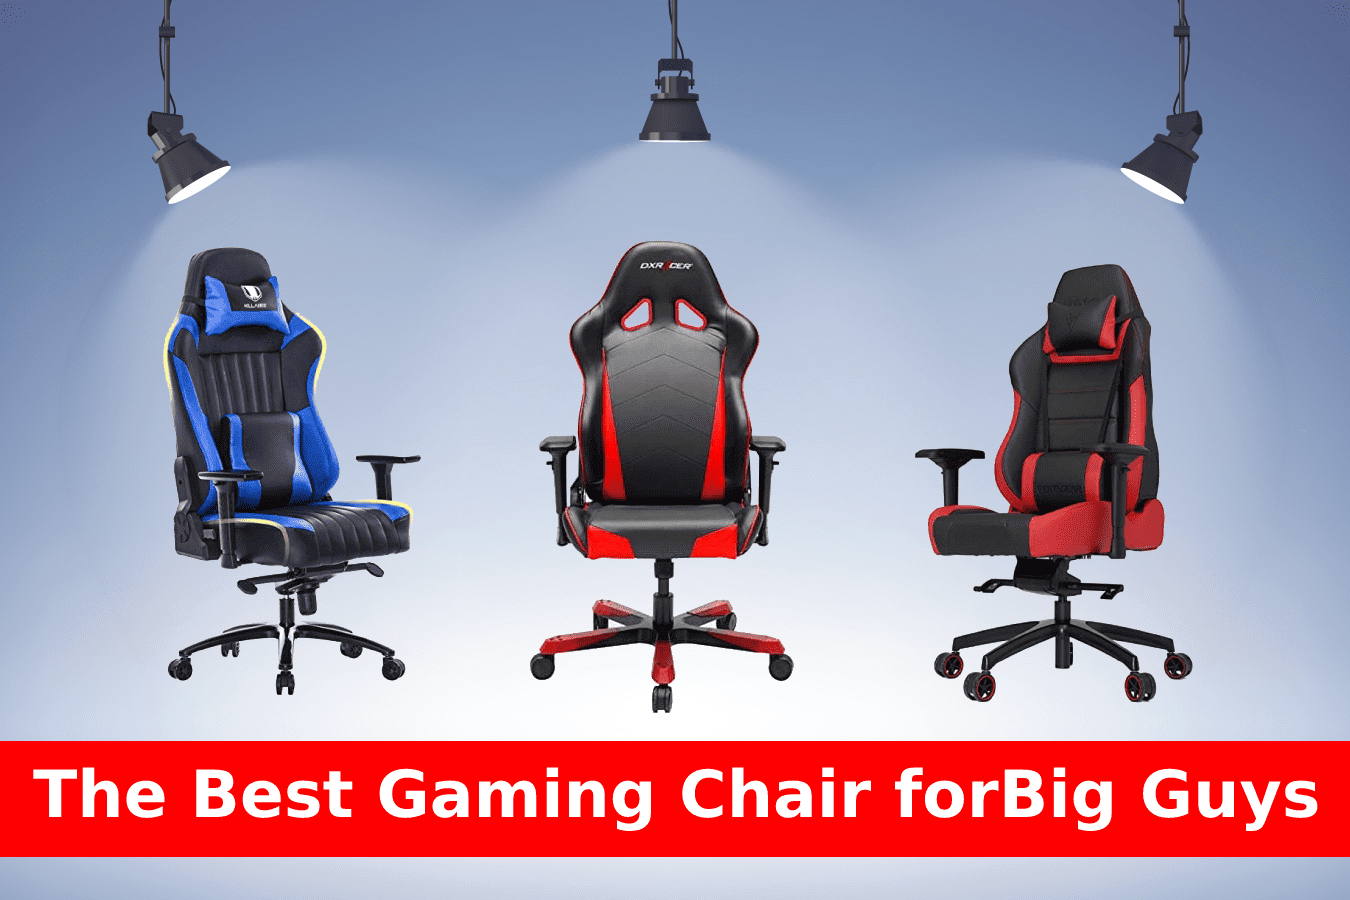 the best gaming chair for big guys in 2019